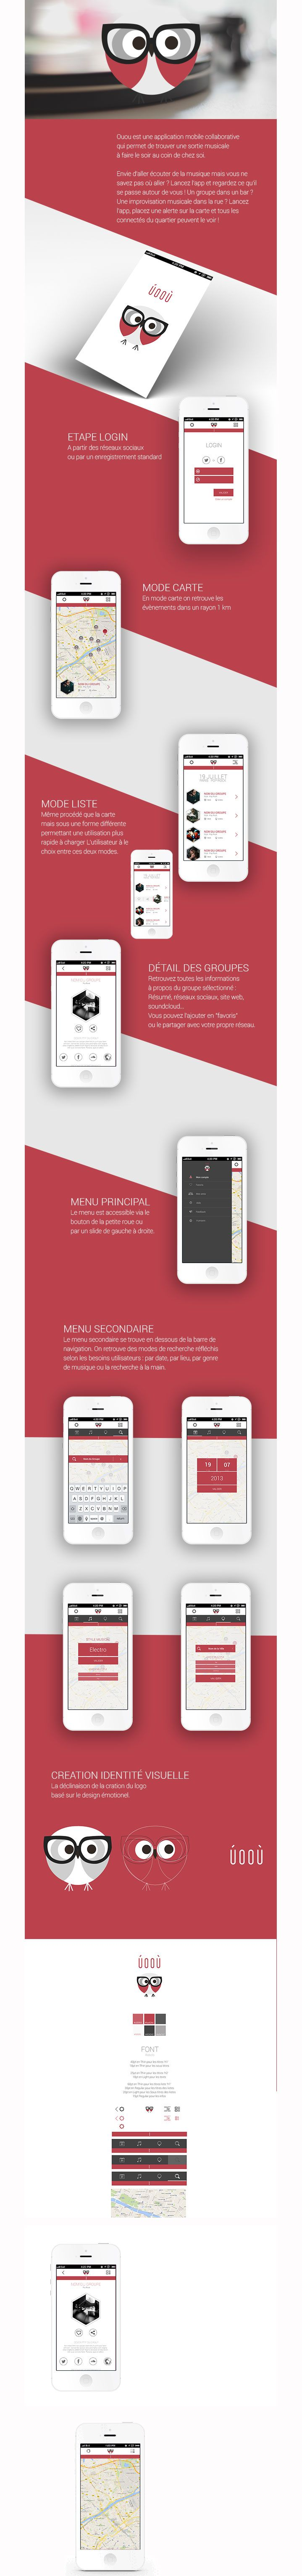 Mobile app design – nice colours and i love the owl logo. #mobile #webdesign #la…